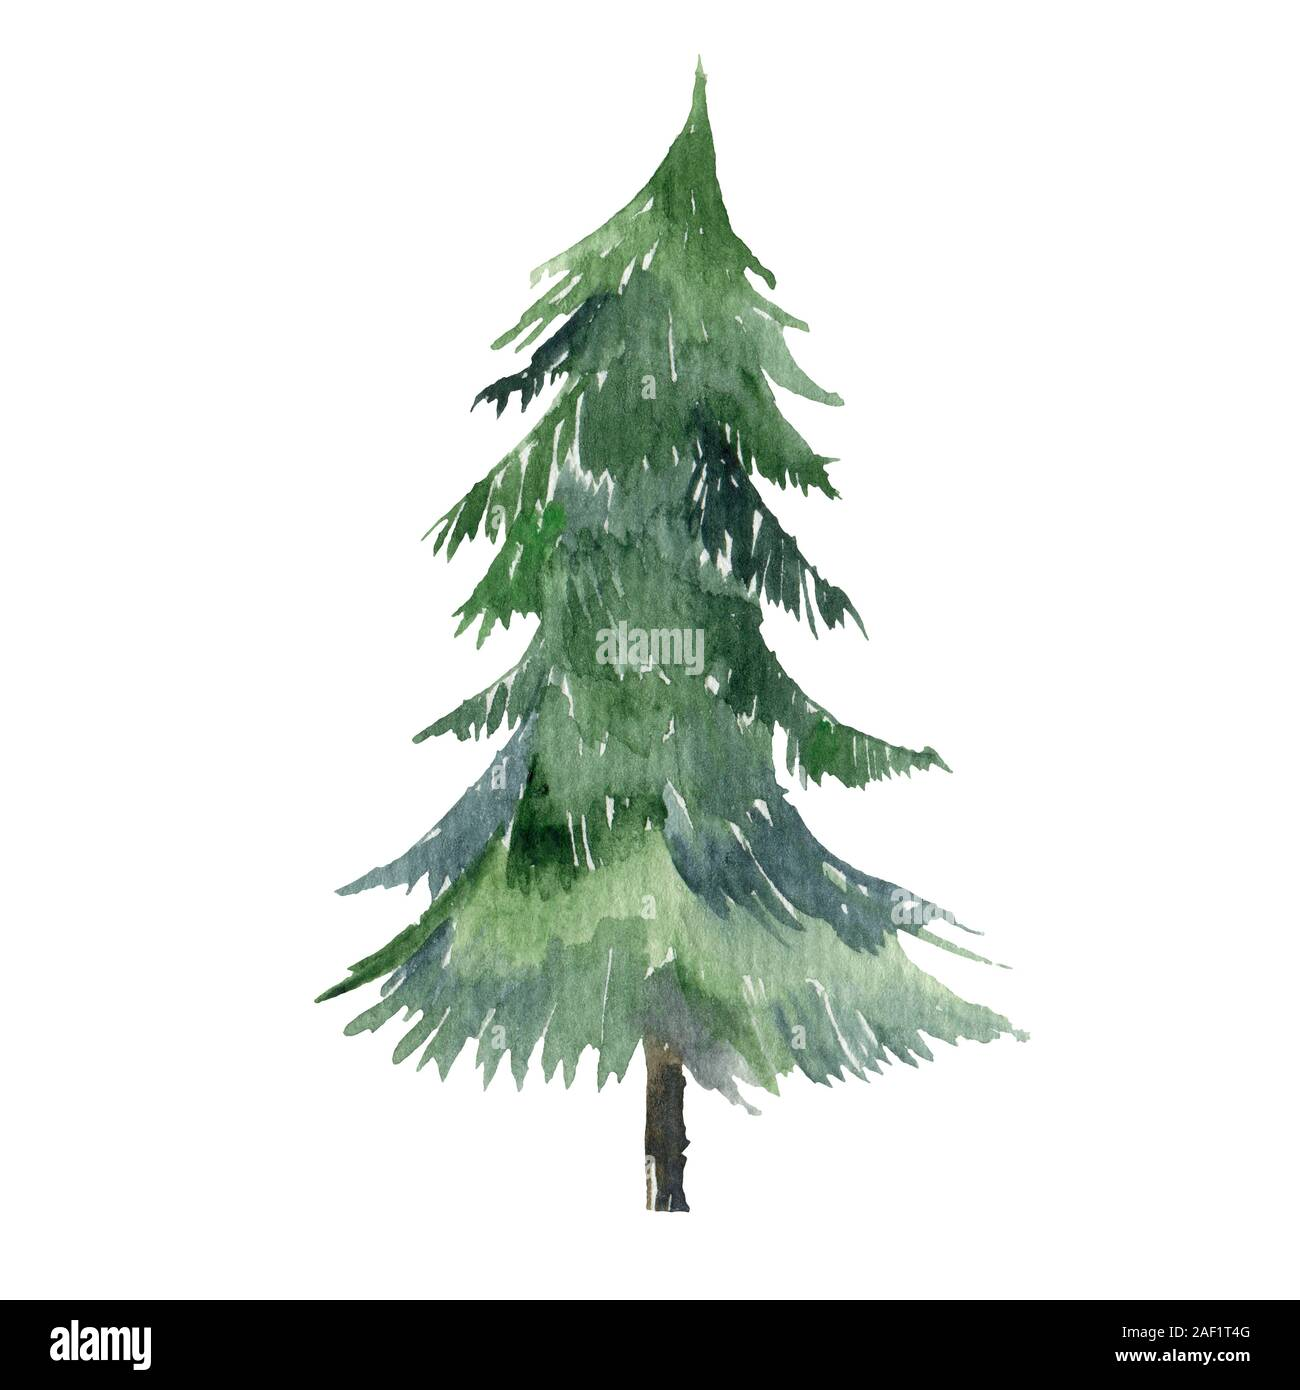 Christmas Tree Silhouette Watercolor Hand Paint Illustration For Design Stock Photo Alamy